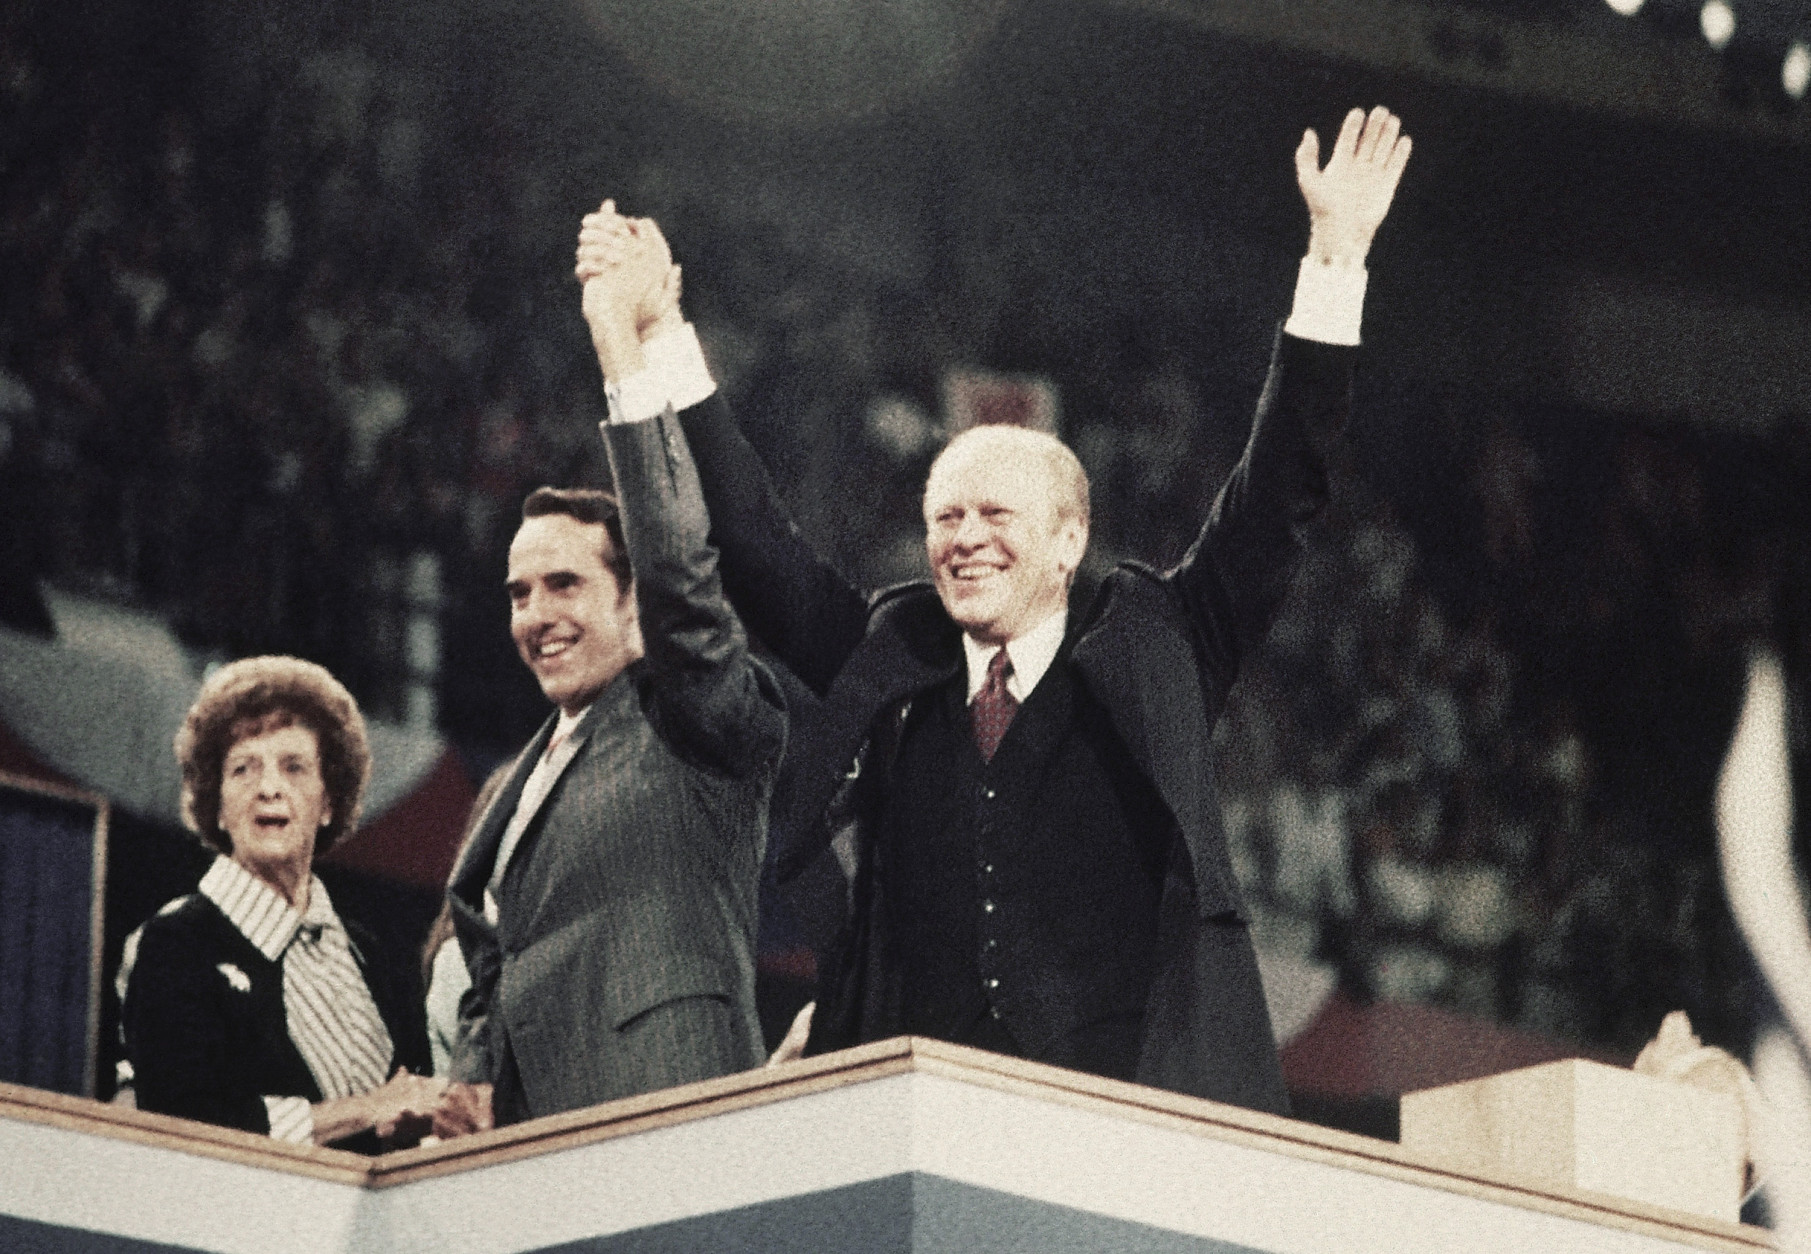 Sen. Robert Dole, center, his mother Bina Dole, left, and Pres. Gerald Ford shown on the final night of the Republican National Convention in Kemper Arena, Aug. 19, 1976, Kansas City, Mo. (AP Photo)